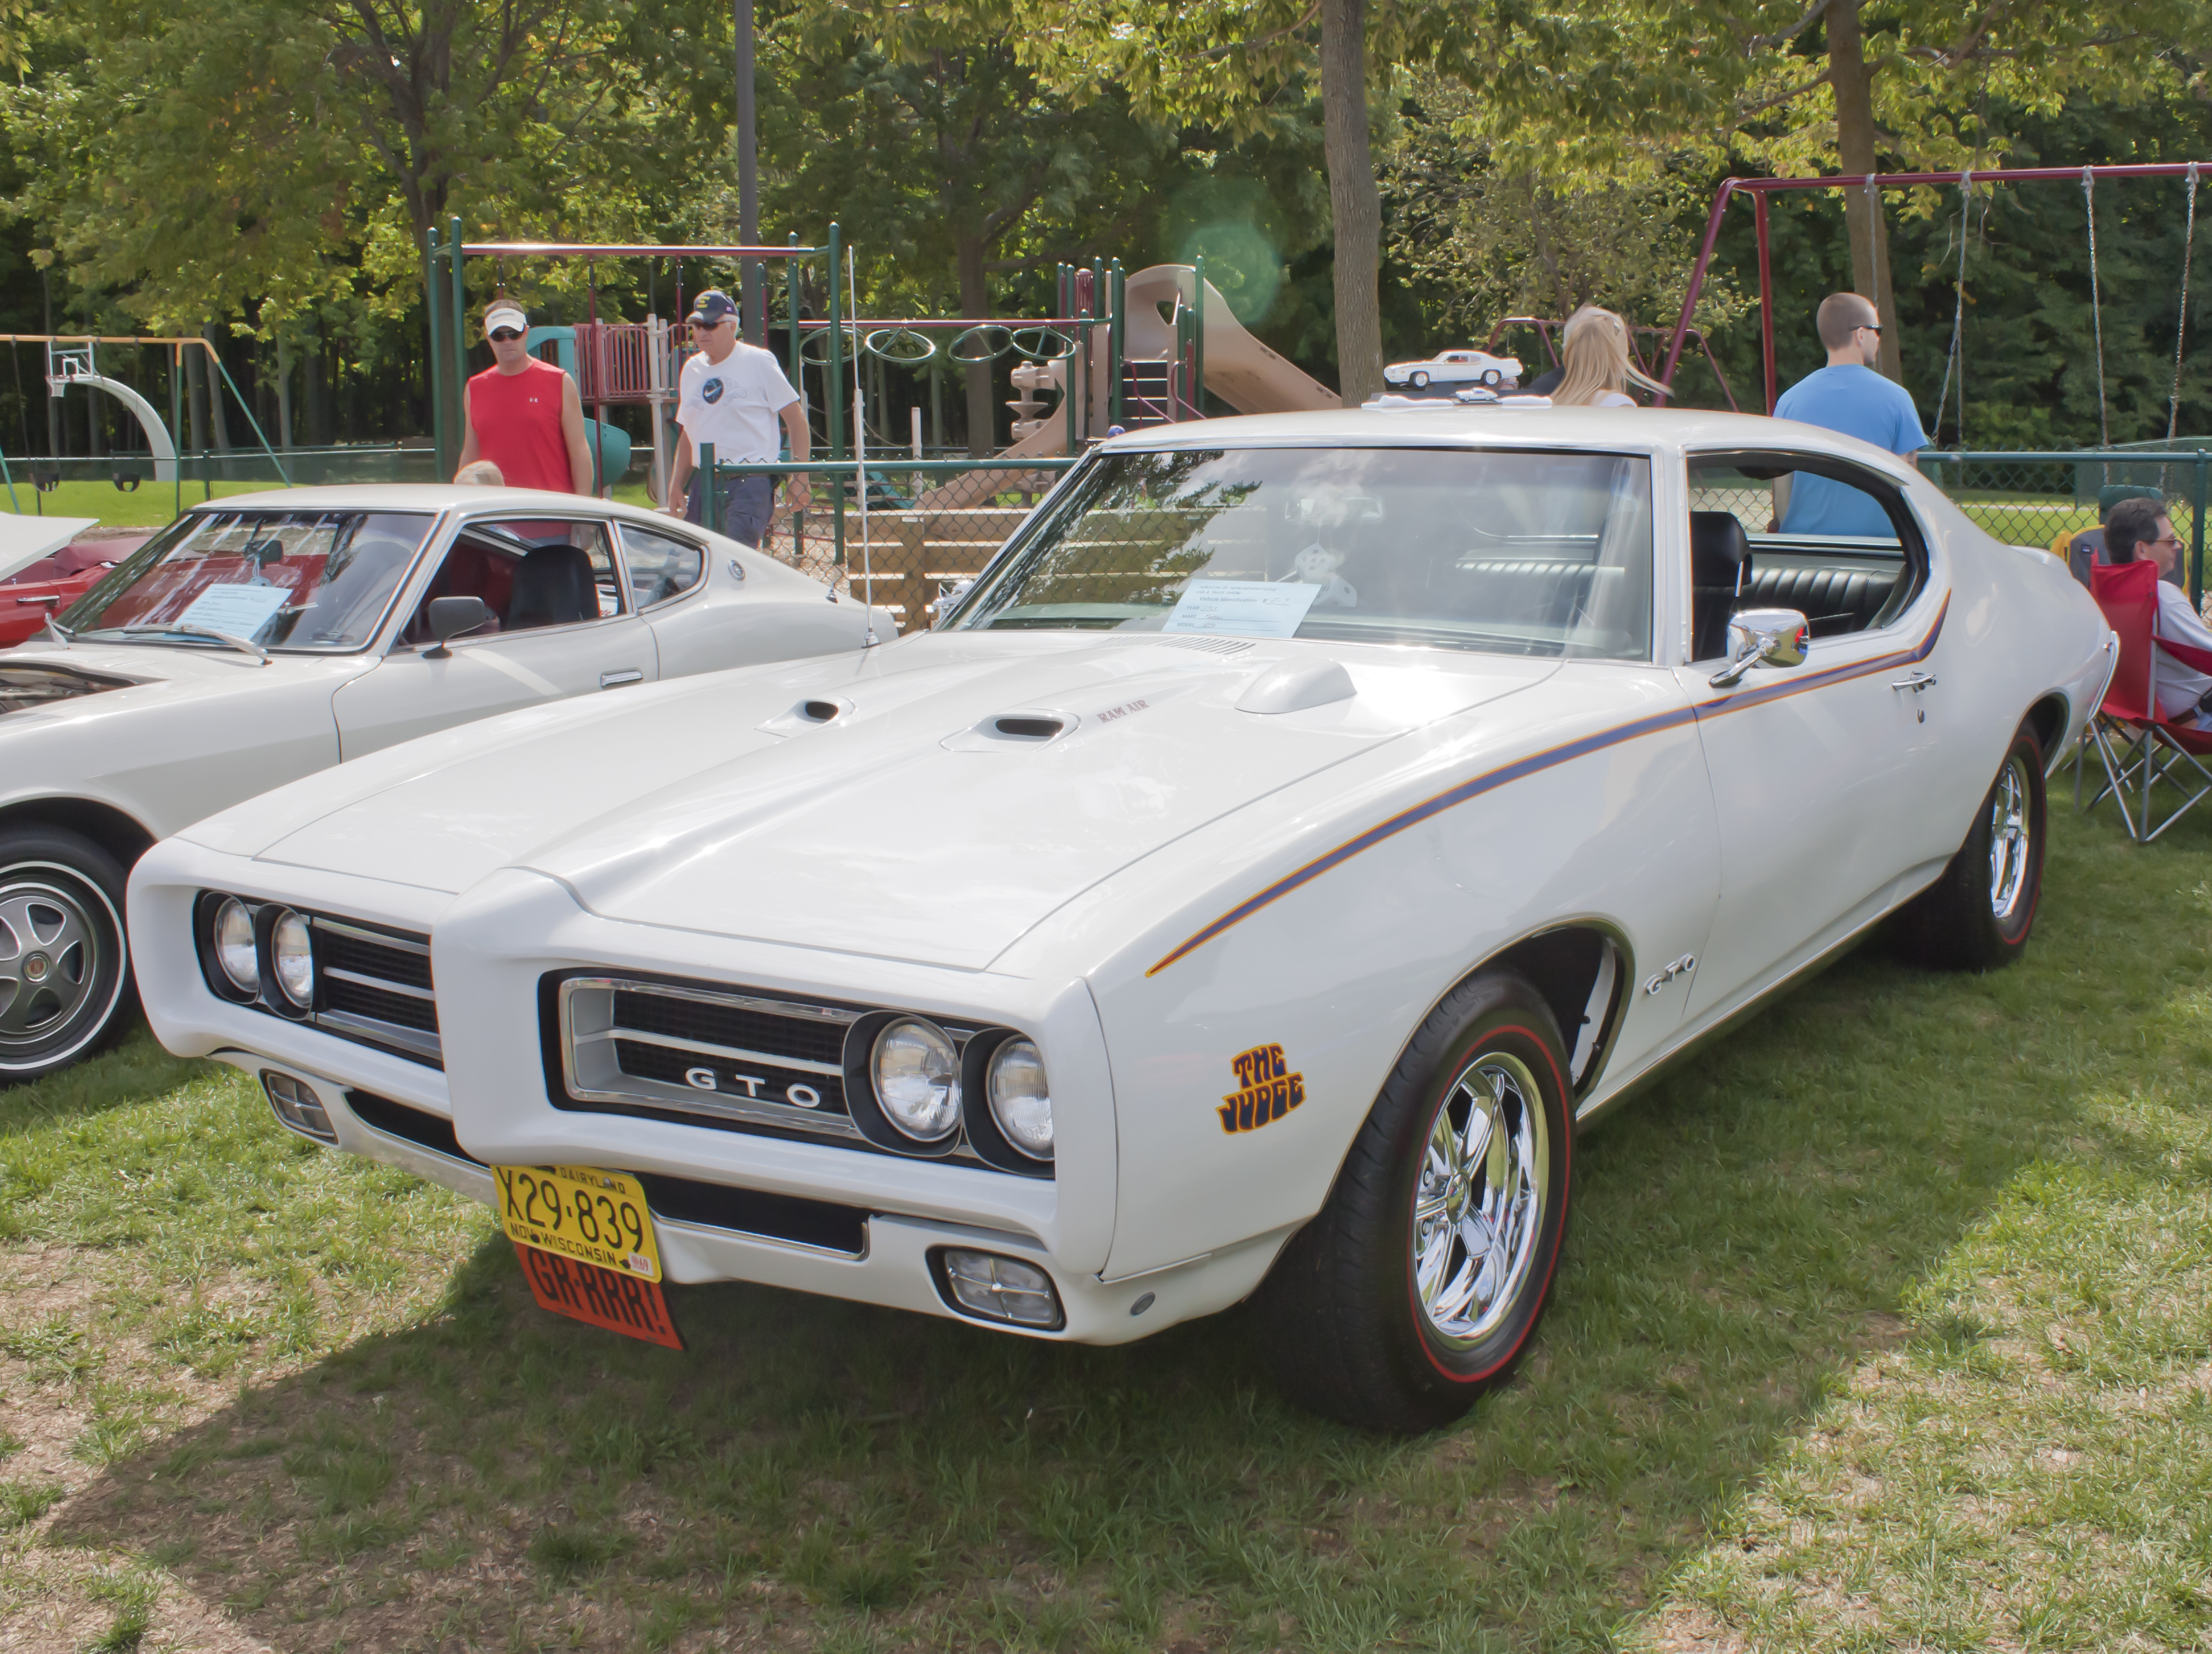 1969 PONTIAC GTO FRONT VIEW BY MYBAITSHOP